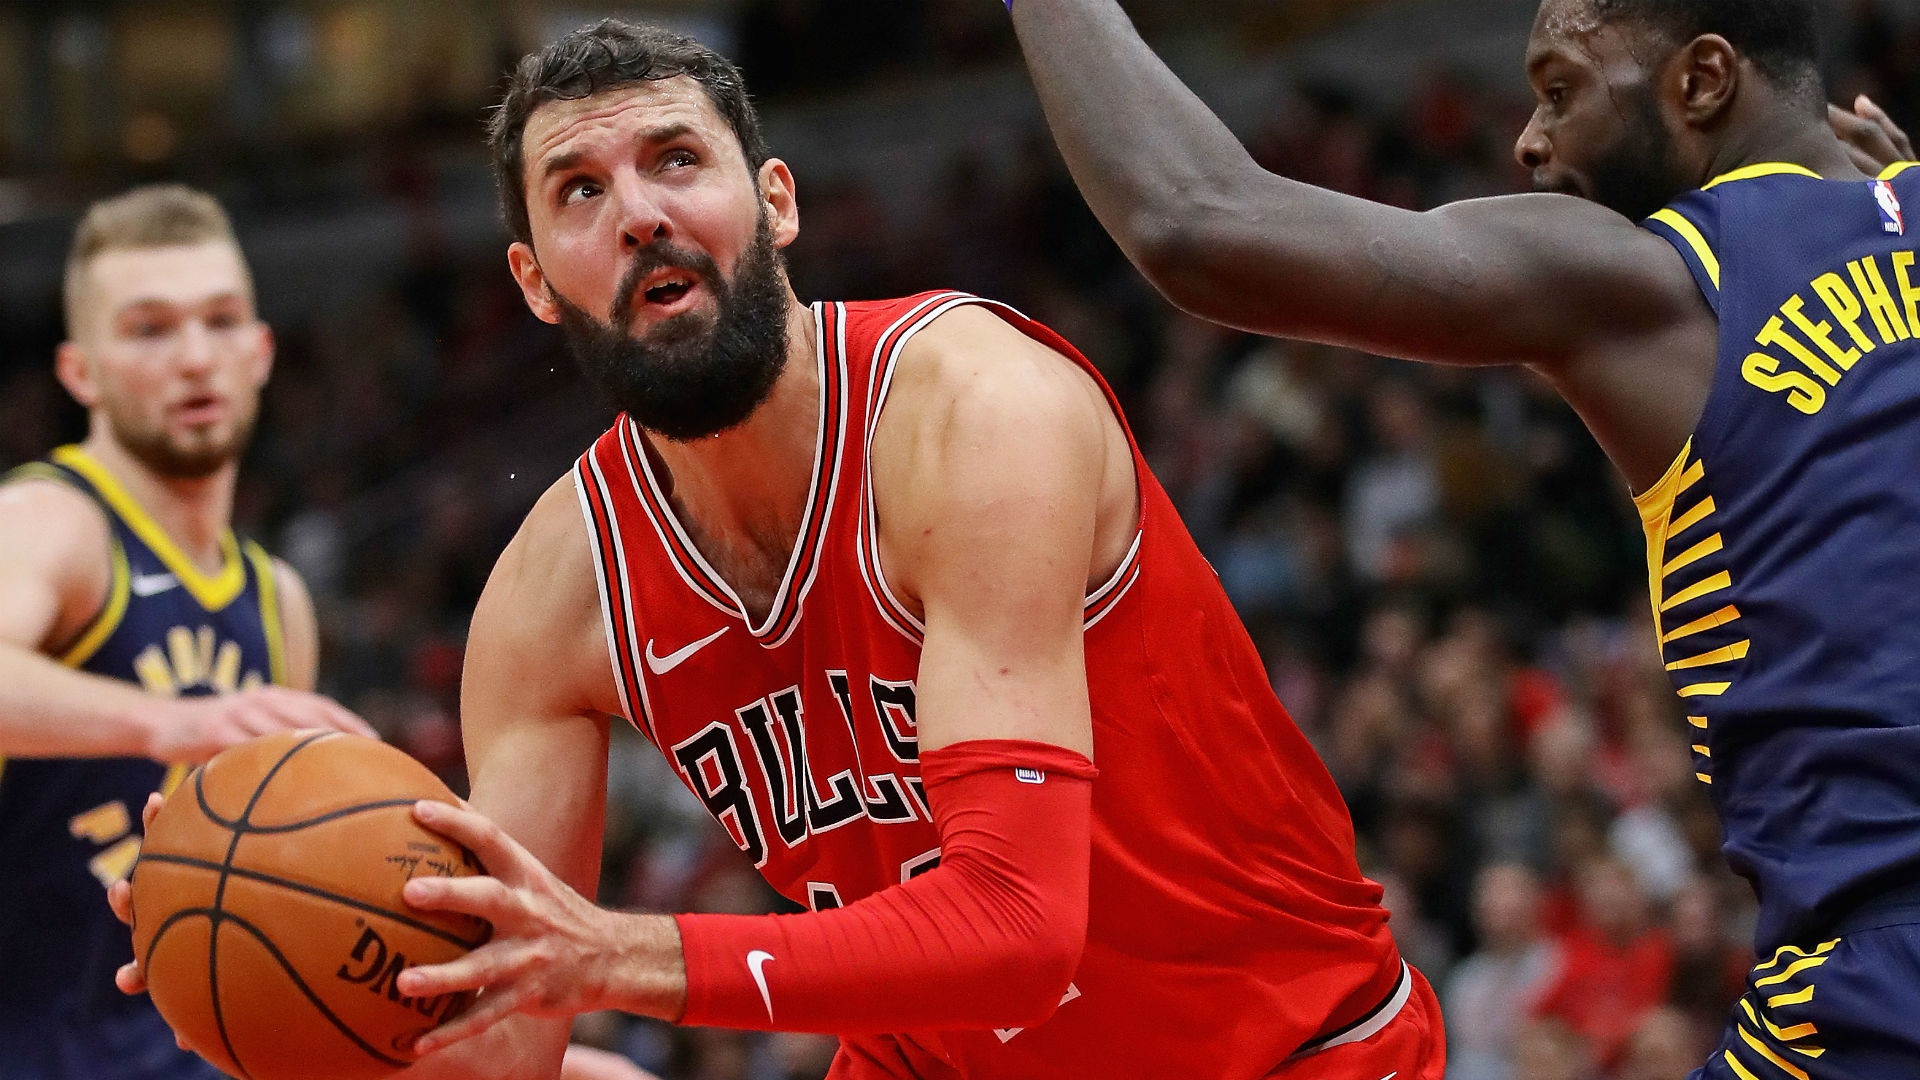 Pistons Reportedly Eyeing Trade For Bulls' Mirotic